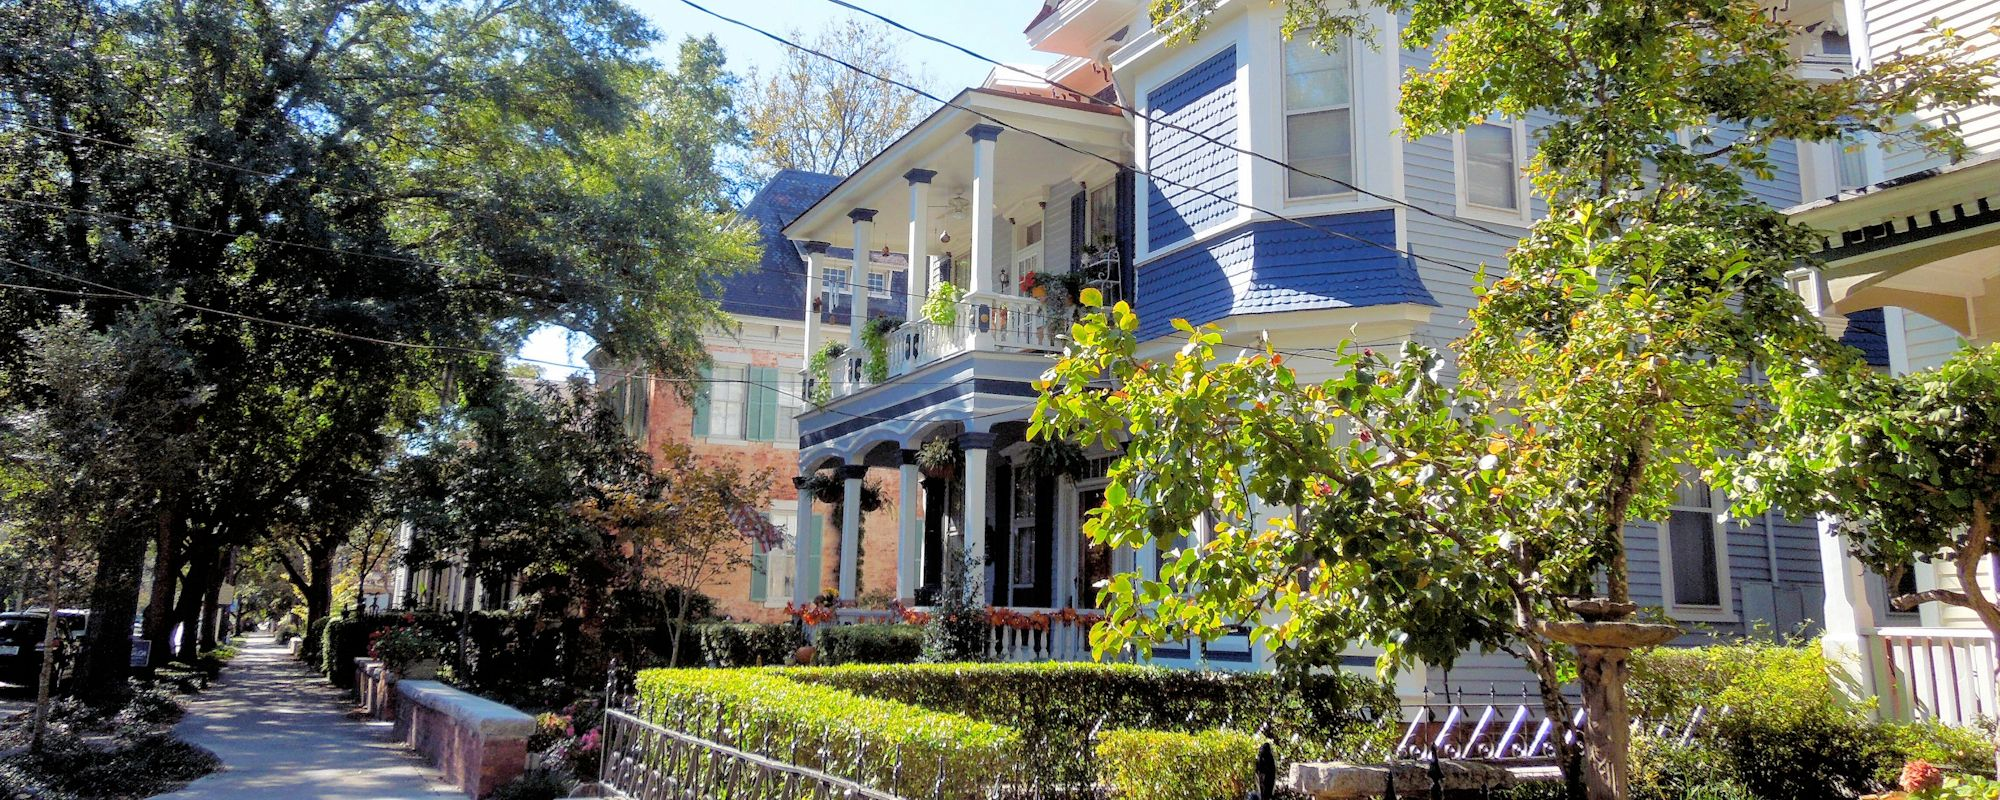 Luxury Neighborhoods - Communities - Historic District